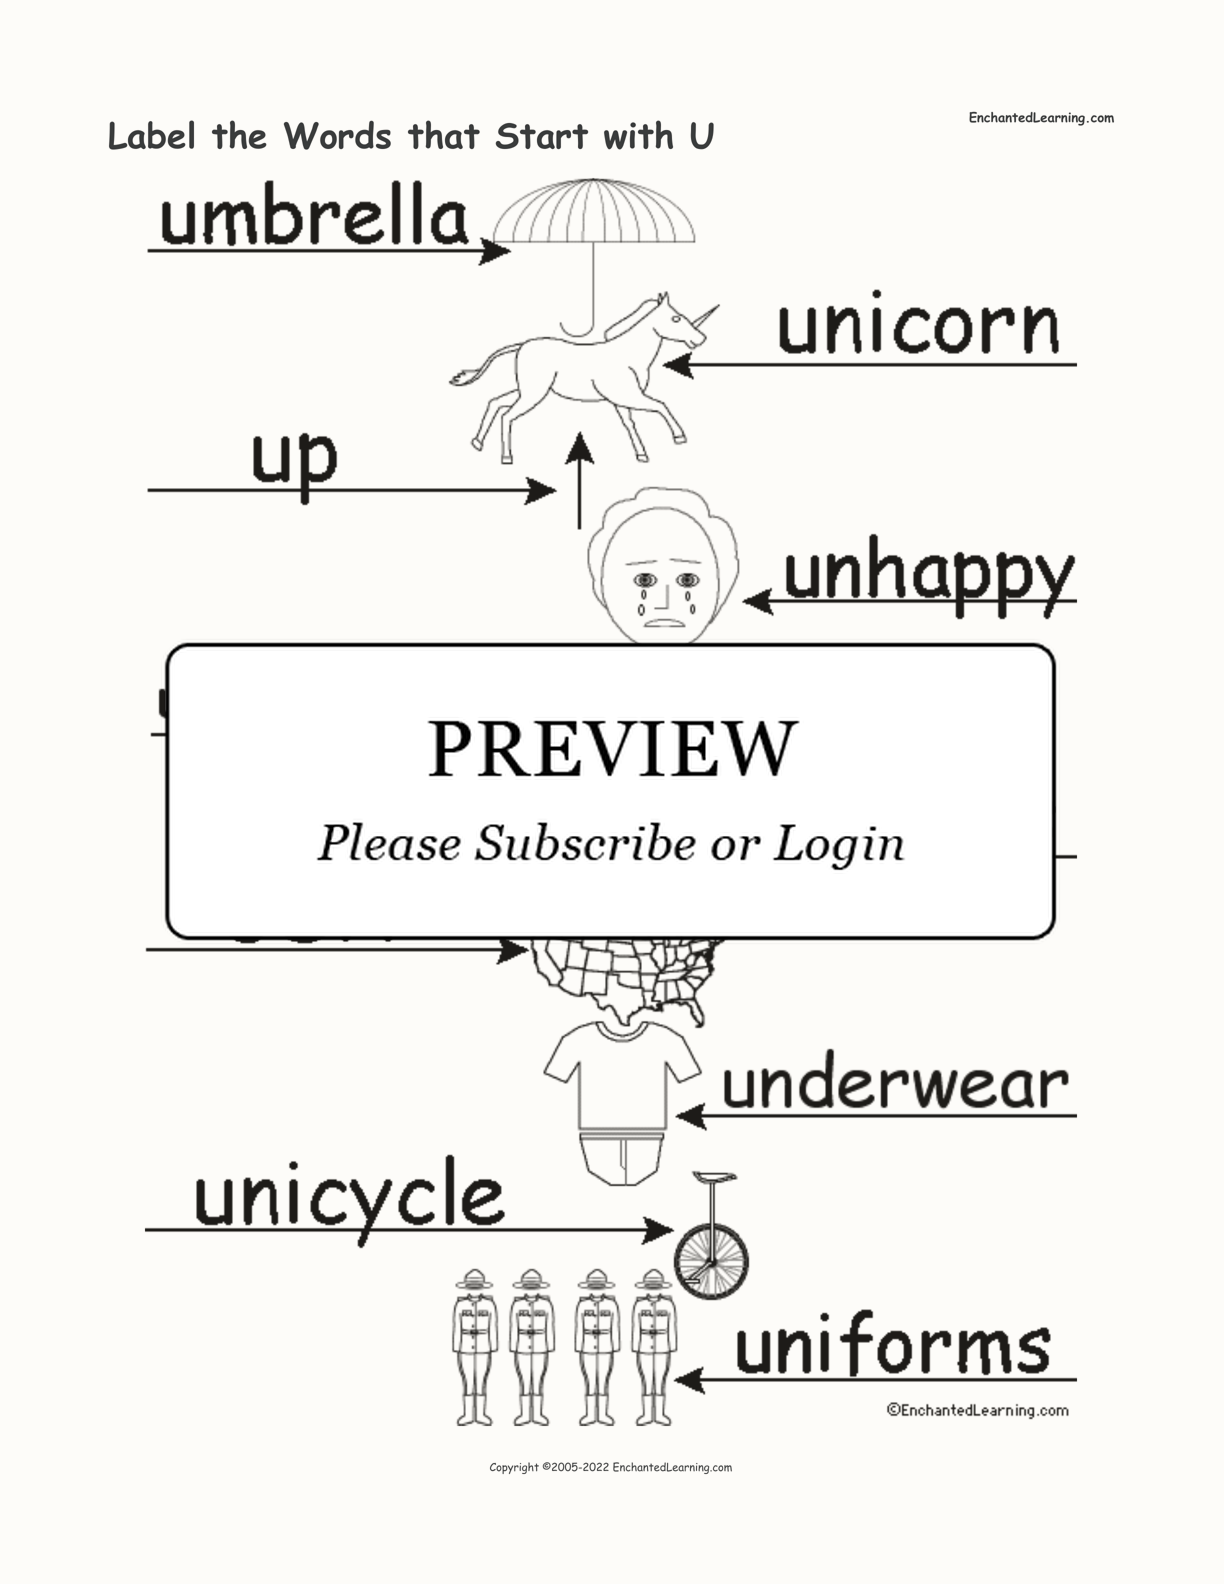 Label the Words that Start with U interactive worksheet page 2